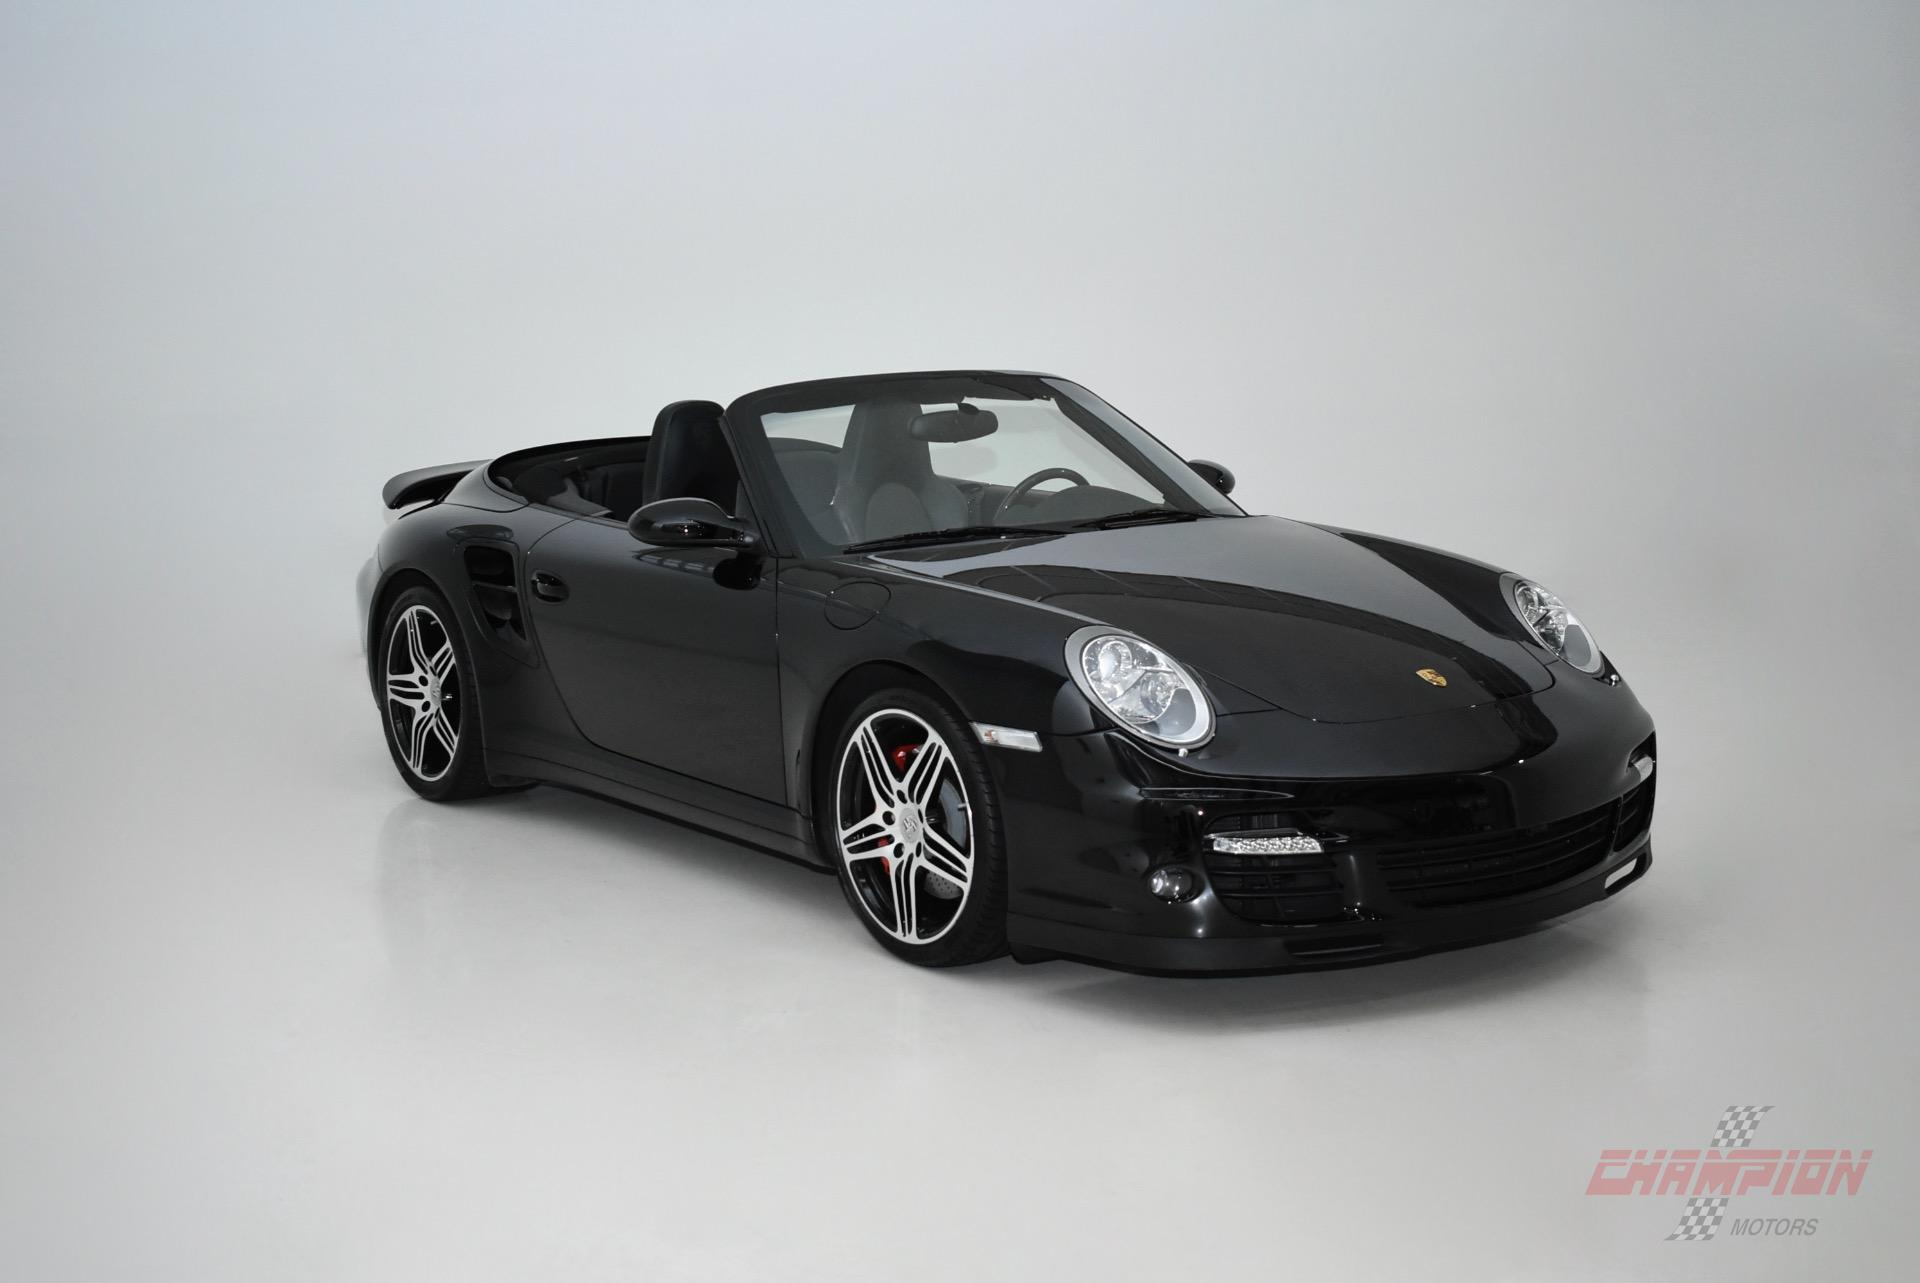 2008 porsche 911 turbo exotic and classic car dealership. Black Bedroom Furniture Sets. Home Design Ideas